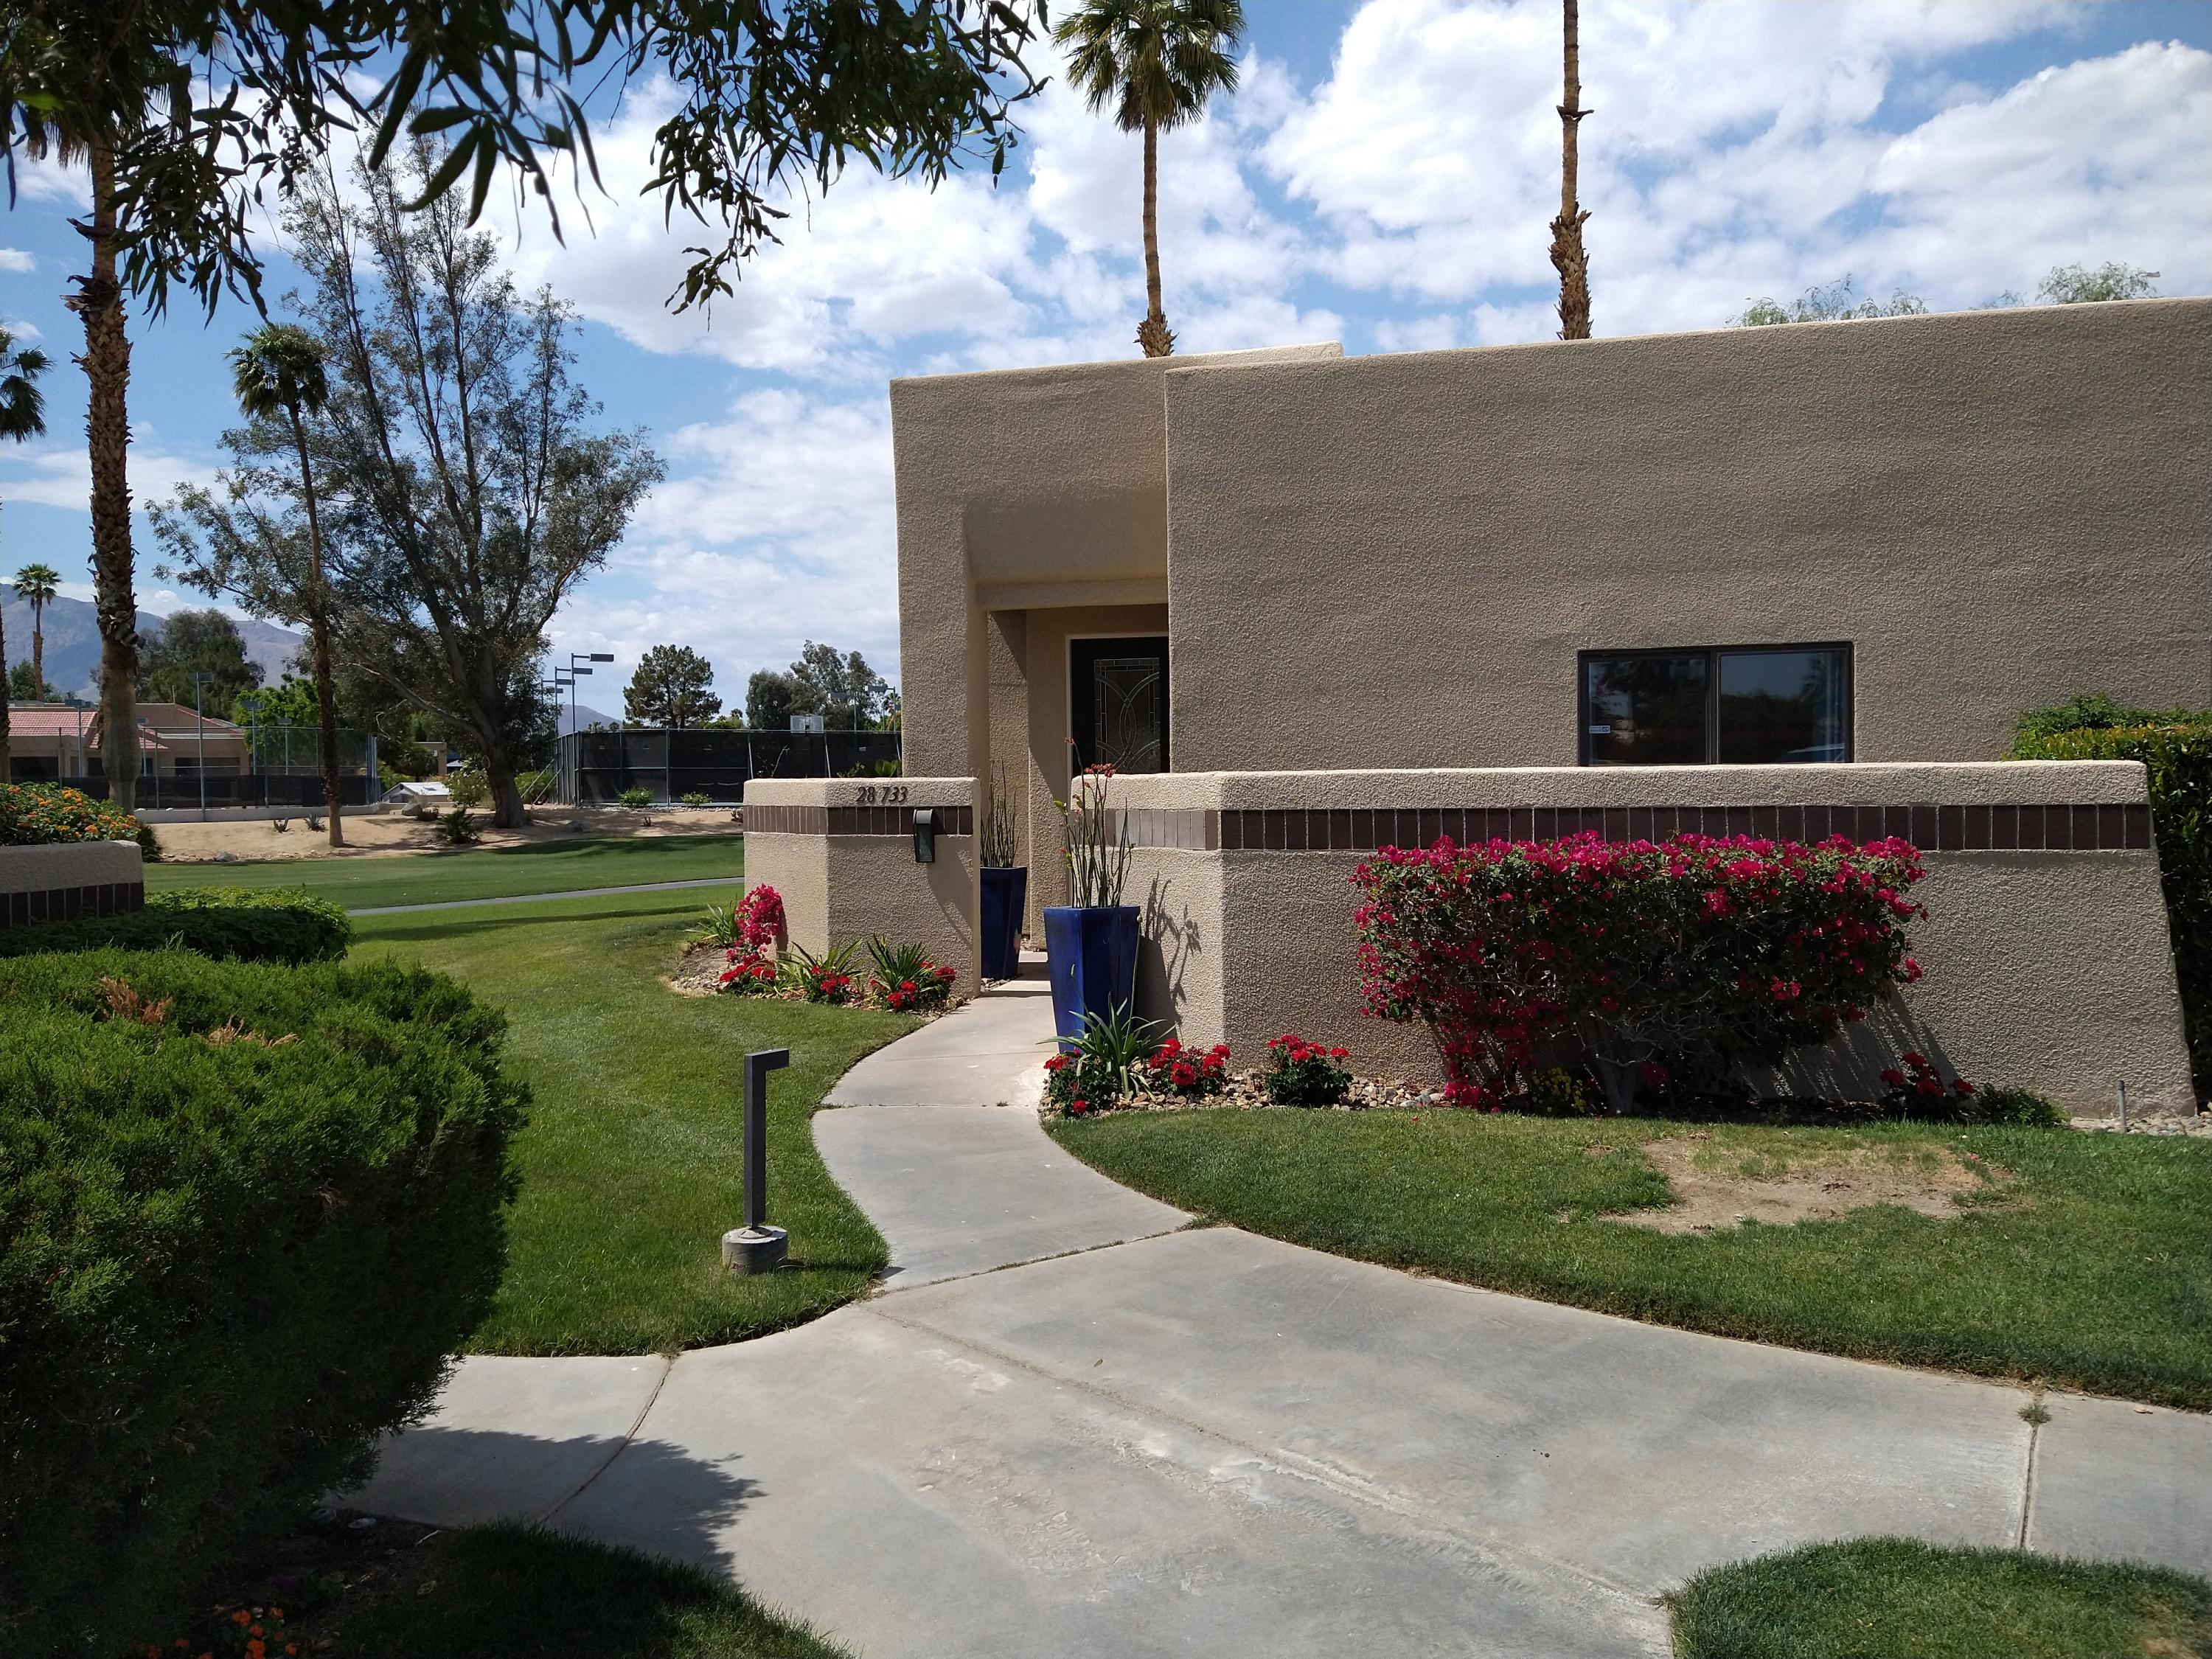 Completely remodeled 2 bed and 2 bath condo on the golf course with views galore. This unit is conveniently close to the club and all the facilities Desert Princess has to offer. Beautiful updated landscaping leads you to the new magnificent custom entry door with leaded glass. The living room is open and inviting, offering high ceilings, recessed lighting, custom tiled fireplace, new high end laminate flooring throughout, new base and case molding and more. The living and dining space is open to a beautiful new custom kitchen with gorgeous quartz countertops and tiled backsplash. There is a  peninsula with counter seating, high end stainless appliances including a Bosch dishwasher. The kitchen sink overlooks the rear patio and greenbelt. This desireable floorplan has a nice separation of bedrooms. Both the guest and master bedroom have recessed lighting, ceiling fans, large closets with newly built interiors. The completely remodeled baths feature beautiful custom tile, new cabinetry, quartz counters, brushed nickel faucets, dual sinks in both and in the master a new glass enclosure for the oversized shower. There is a laundry closet that has a full size washer and dryer. With this unit there is a single car garage with a roll up sectional door. This unit is beautiful and no doubt won't last.